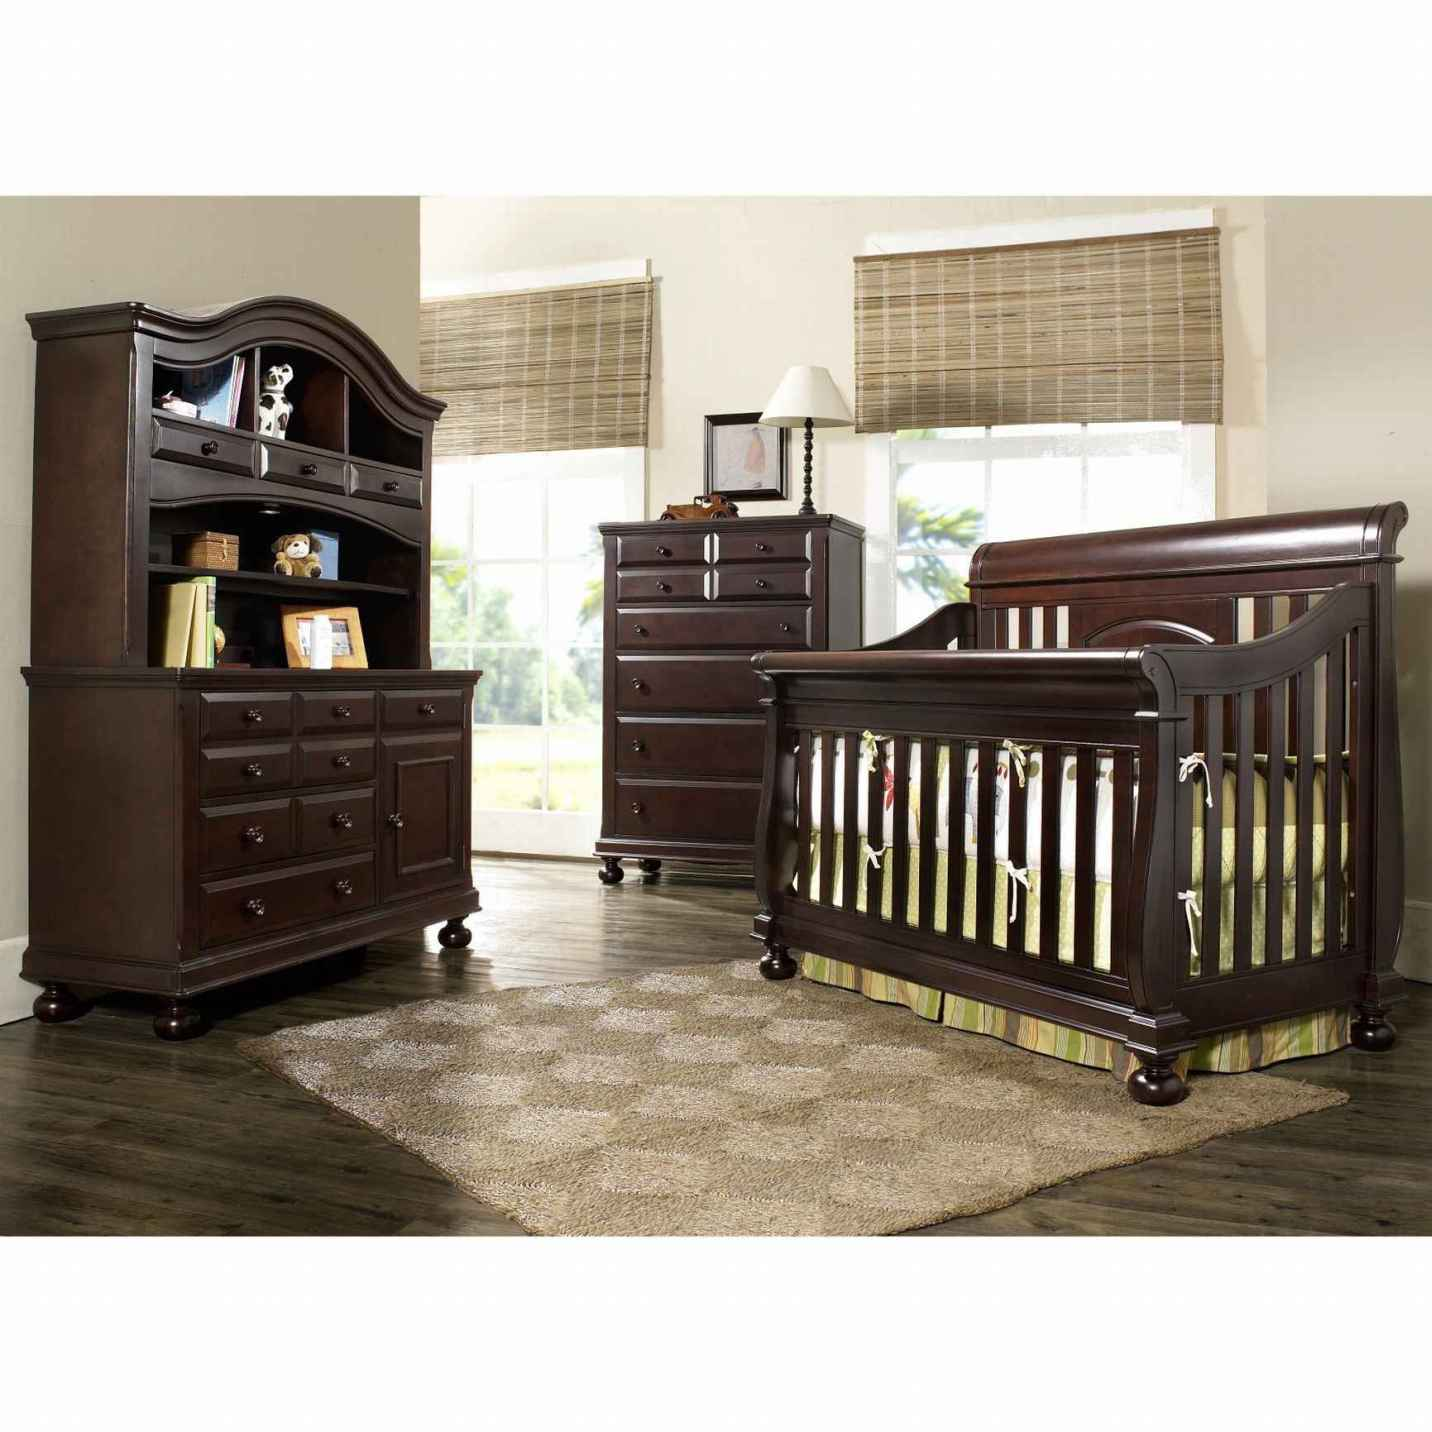 Image of: Baby Nursery Furniture Sets brown